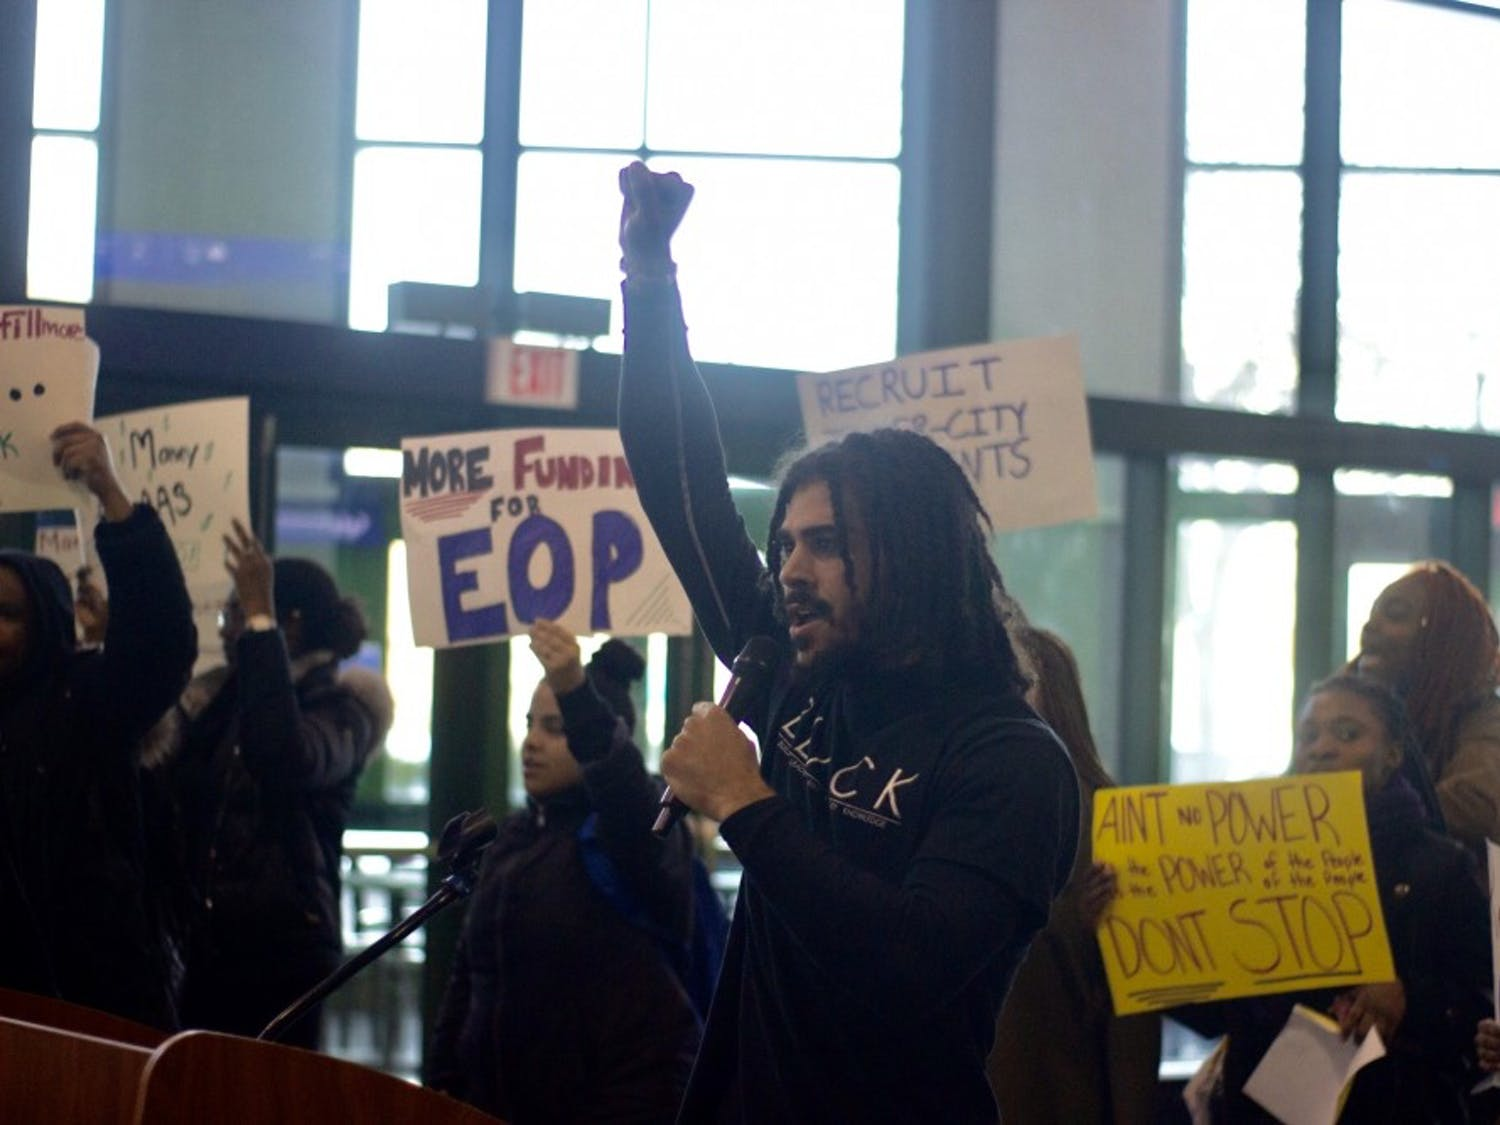 Students demonstrated in the Student Union Friday afternoon and demanded UB change the name of buildings named after Millard Fillmore, increase black faculty and provide more funding for EOP.